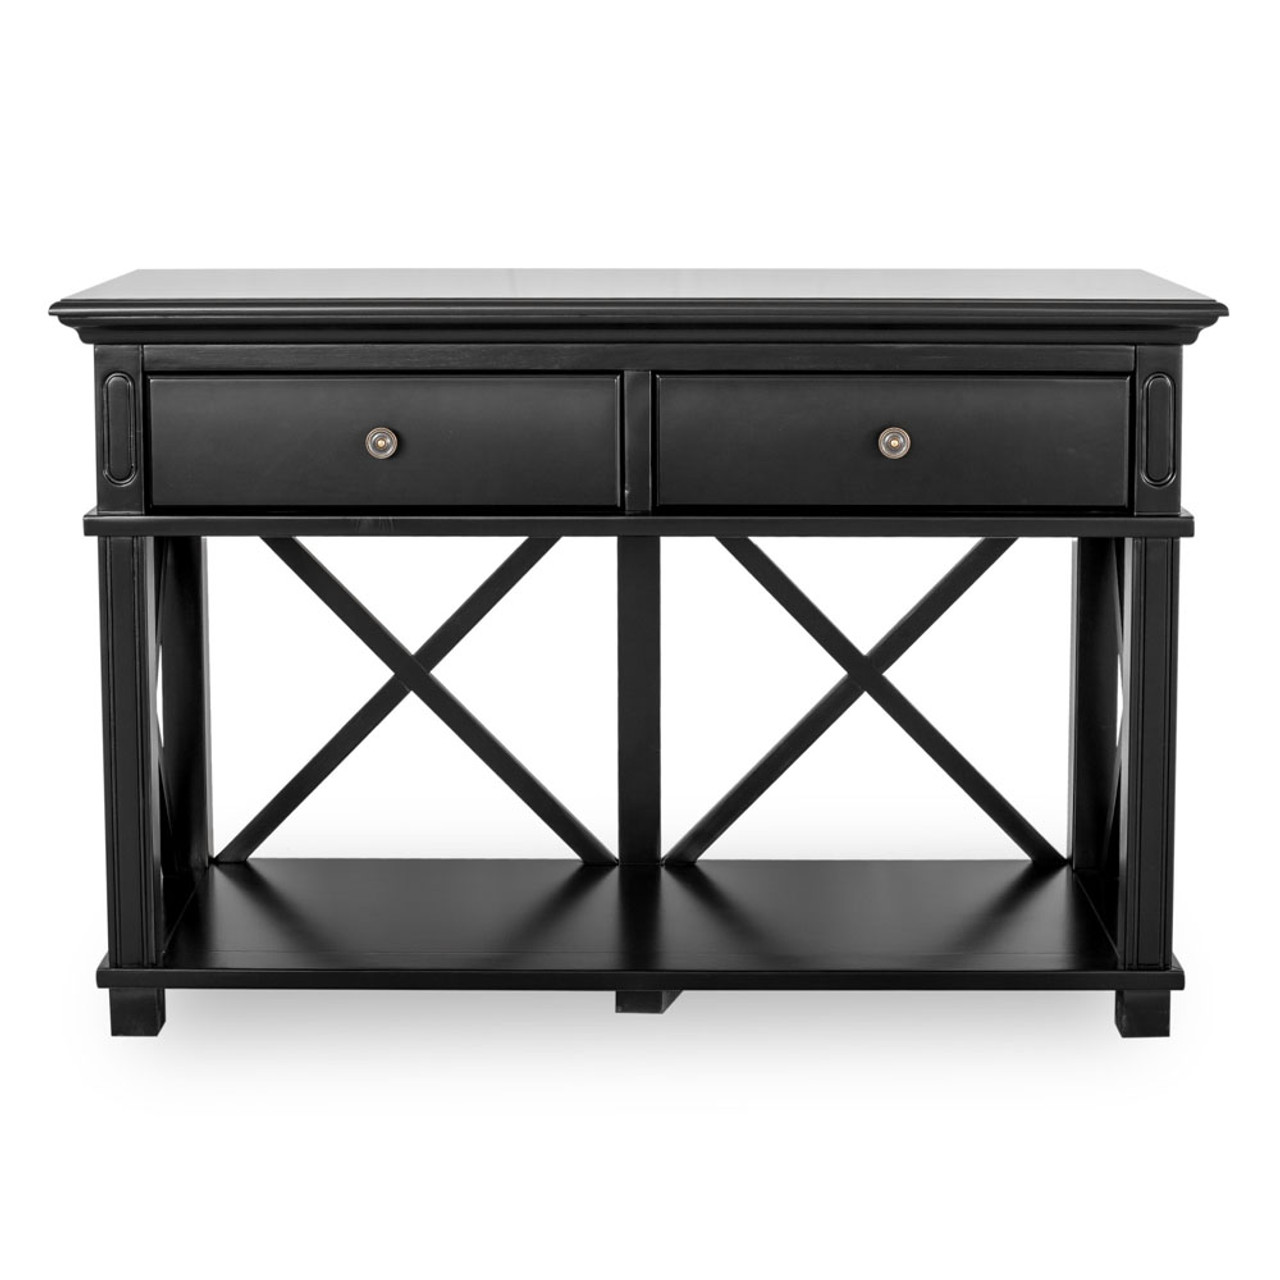 Picture of: Hamptons Cross Console Table 2 Drawer Black Hamptons Style Sorrento Furniture